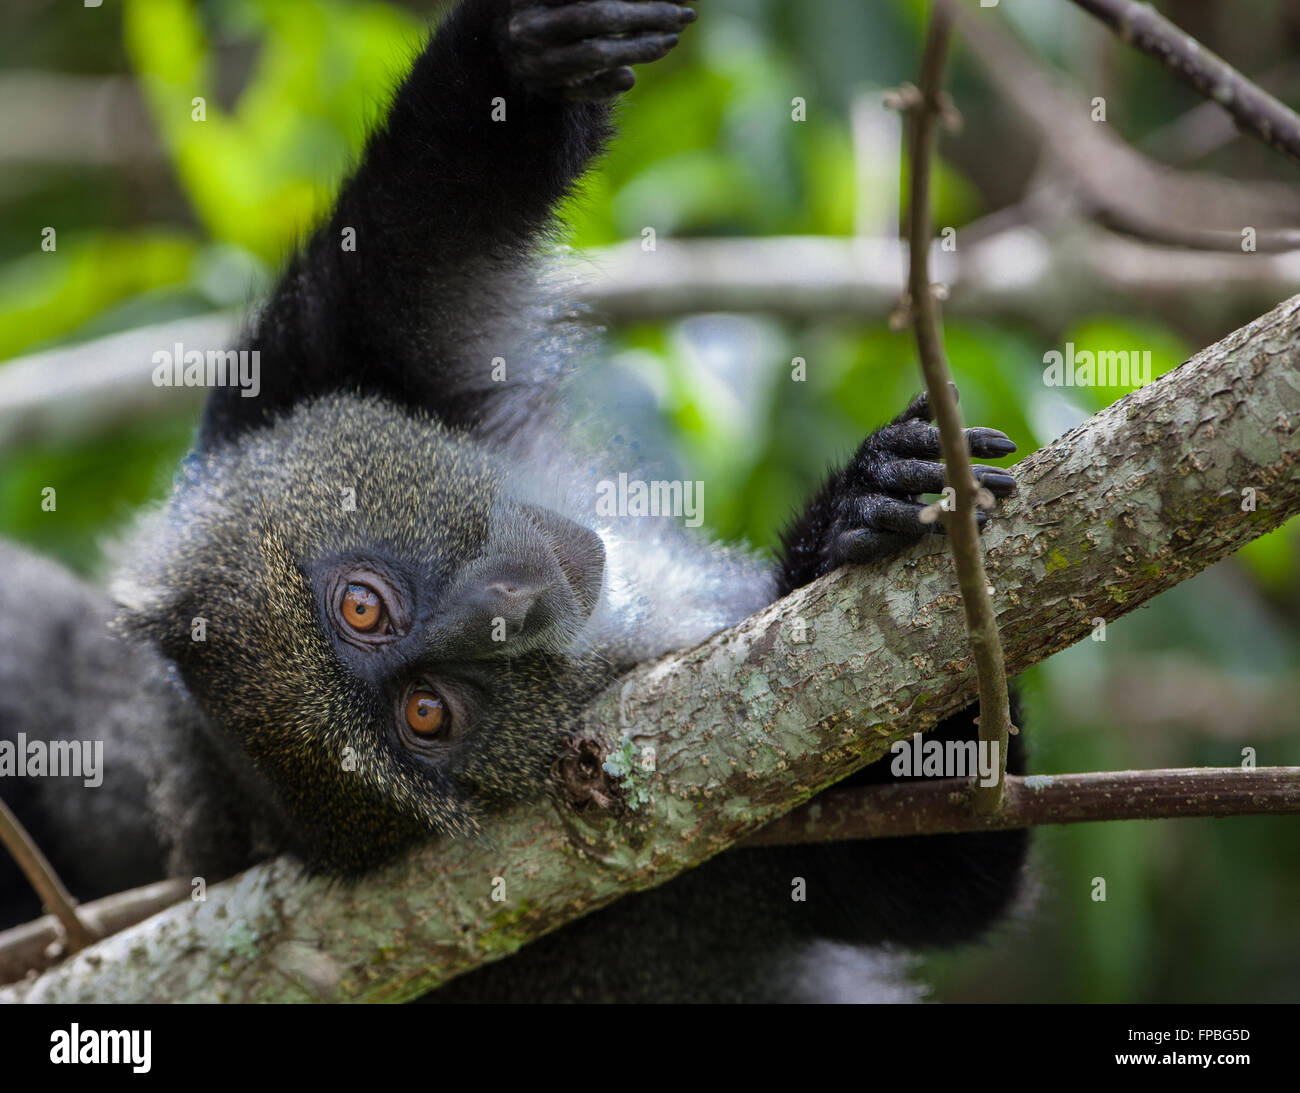 Sykes's monkey staring at camera with head tilted and resting on branch - Stock Image